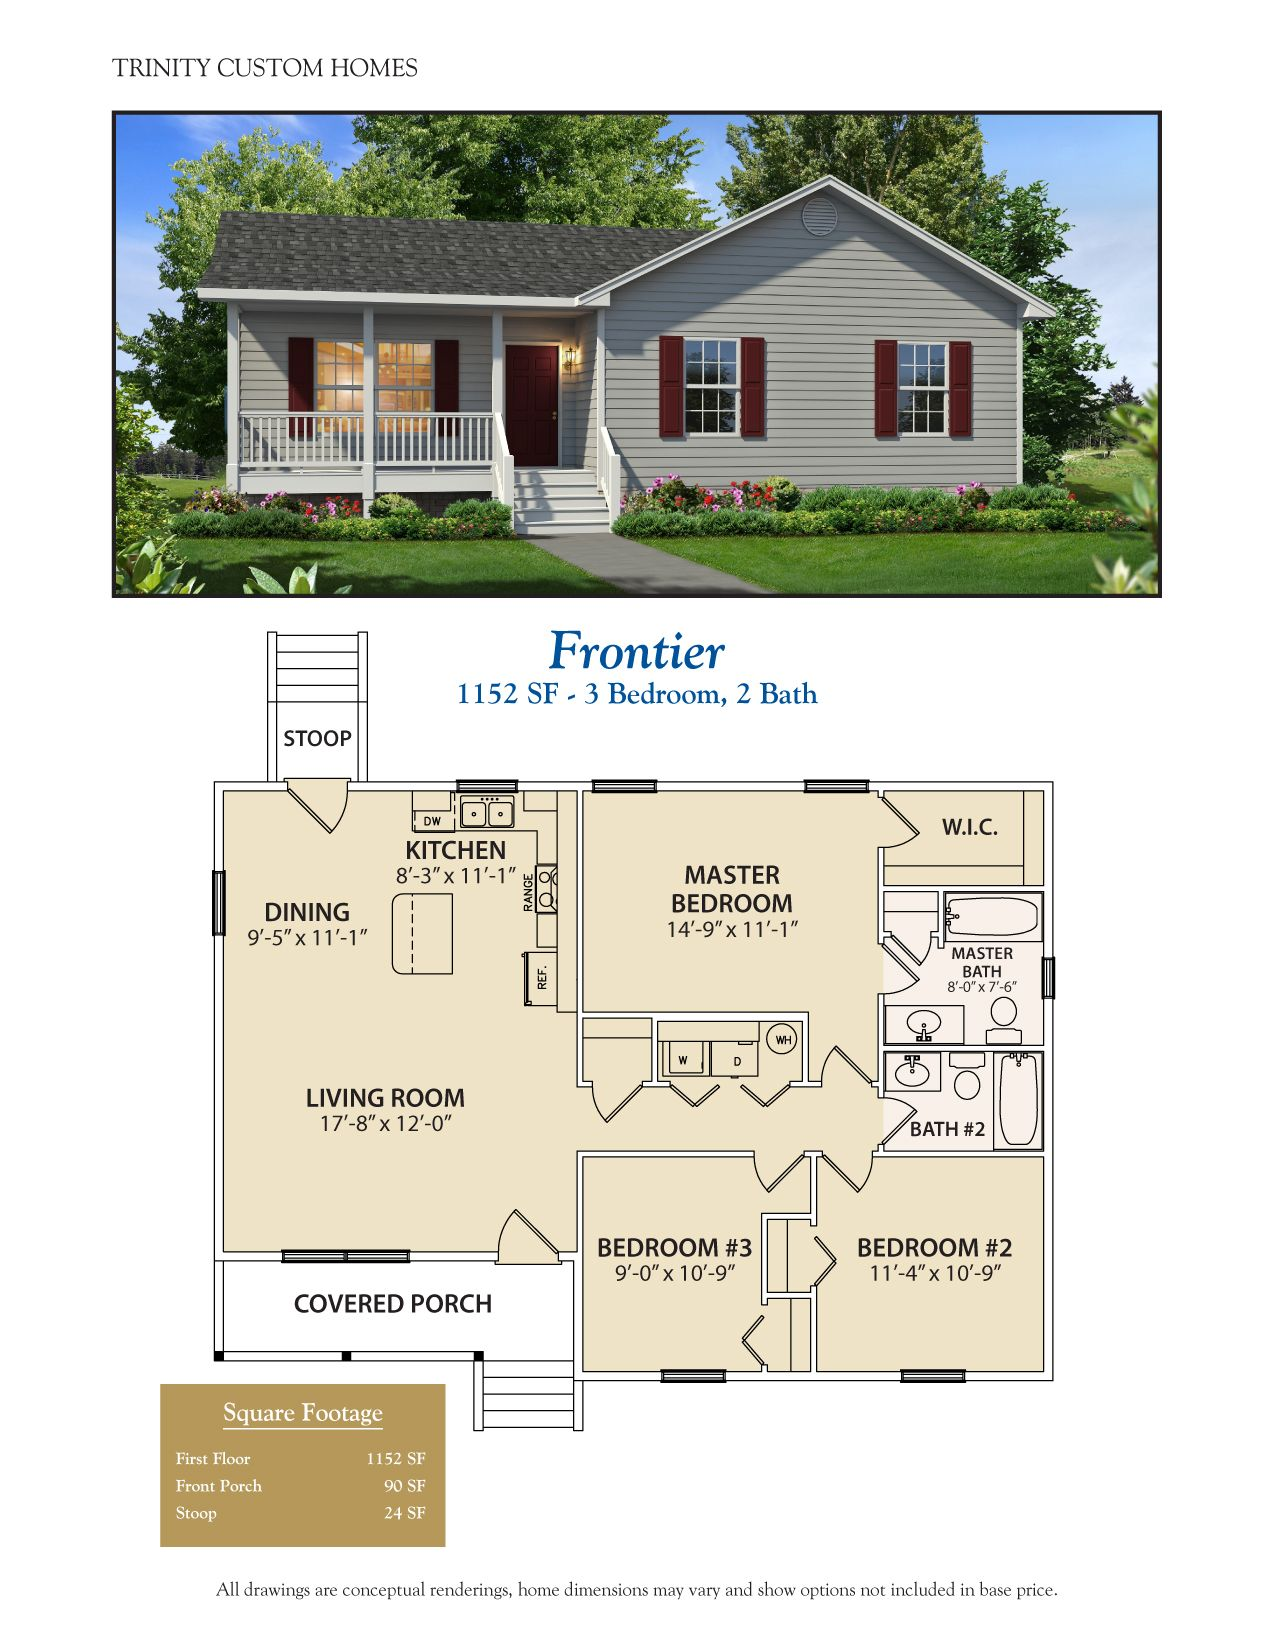 Small 3 Bedroom Cabin Plans Take A Look At All Of Trinity Custom Homes Georgia Floor Plans